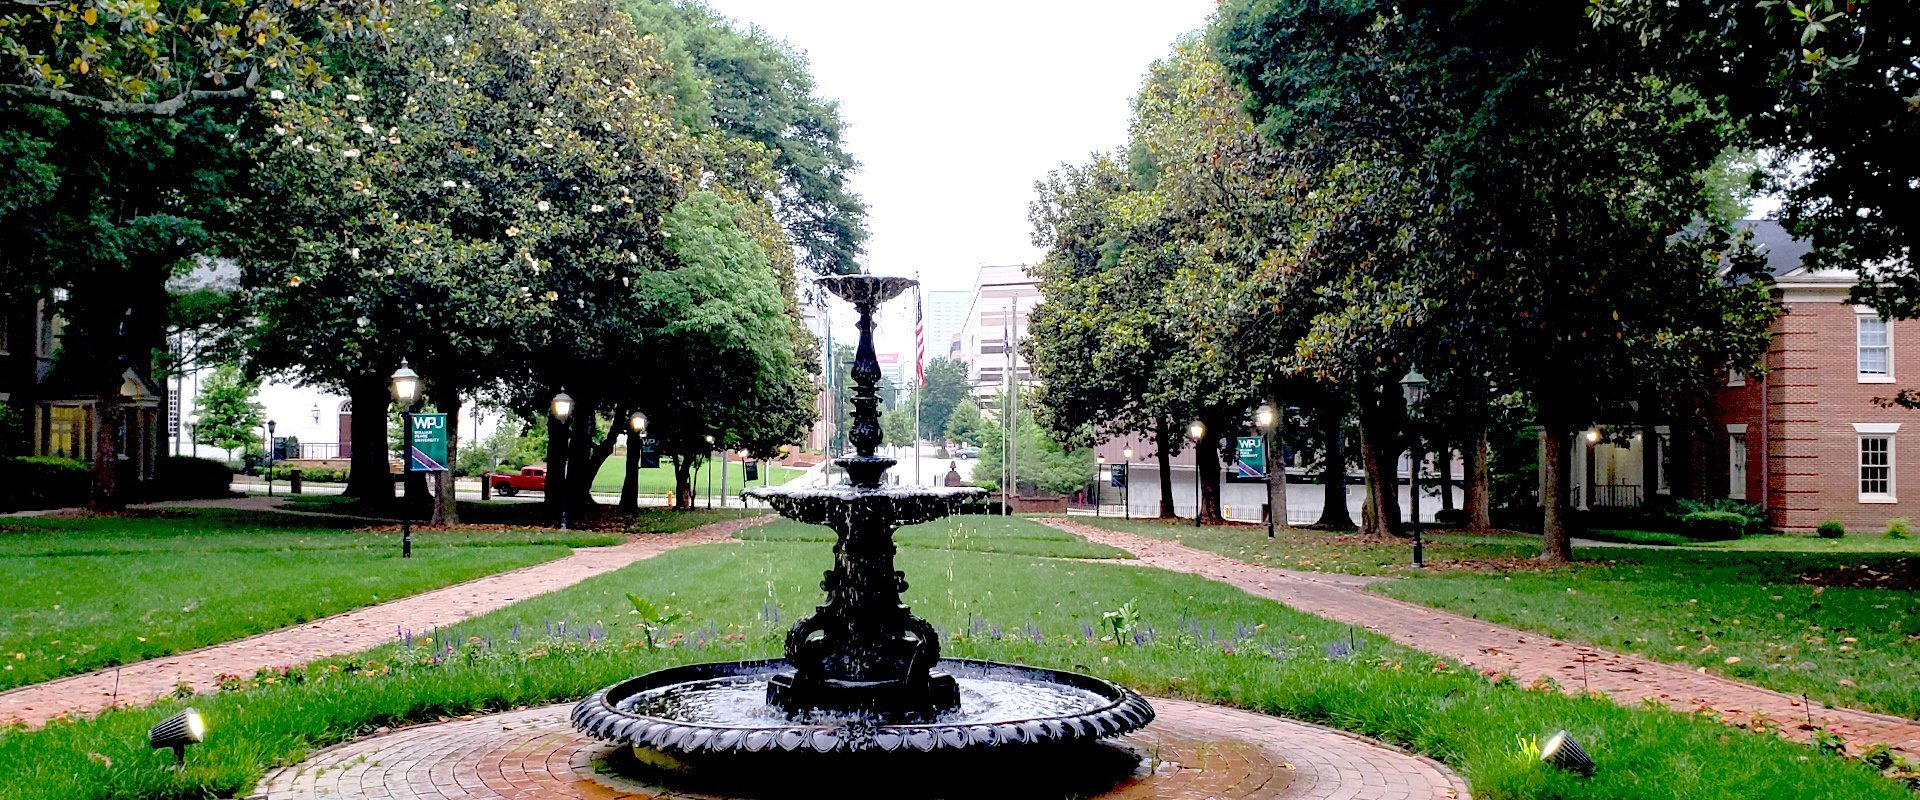 William Peace University Downtown Raleigh NC Historic Fountain - William Peace University's Michael Wolf Named to 2014-15 Academic All-District Team